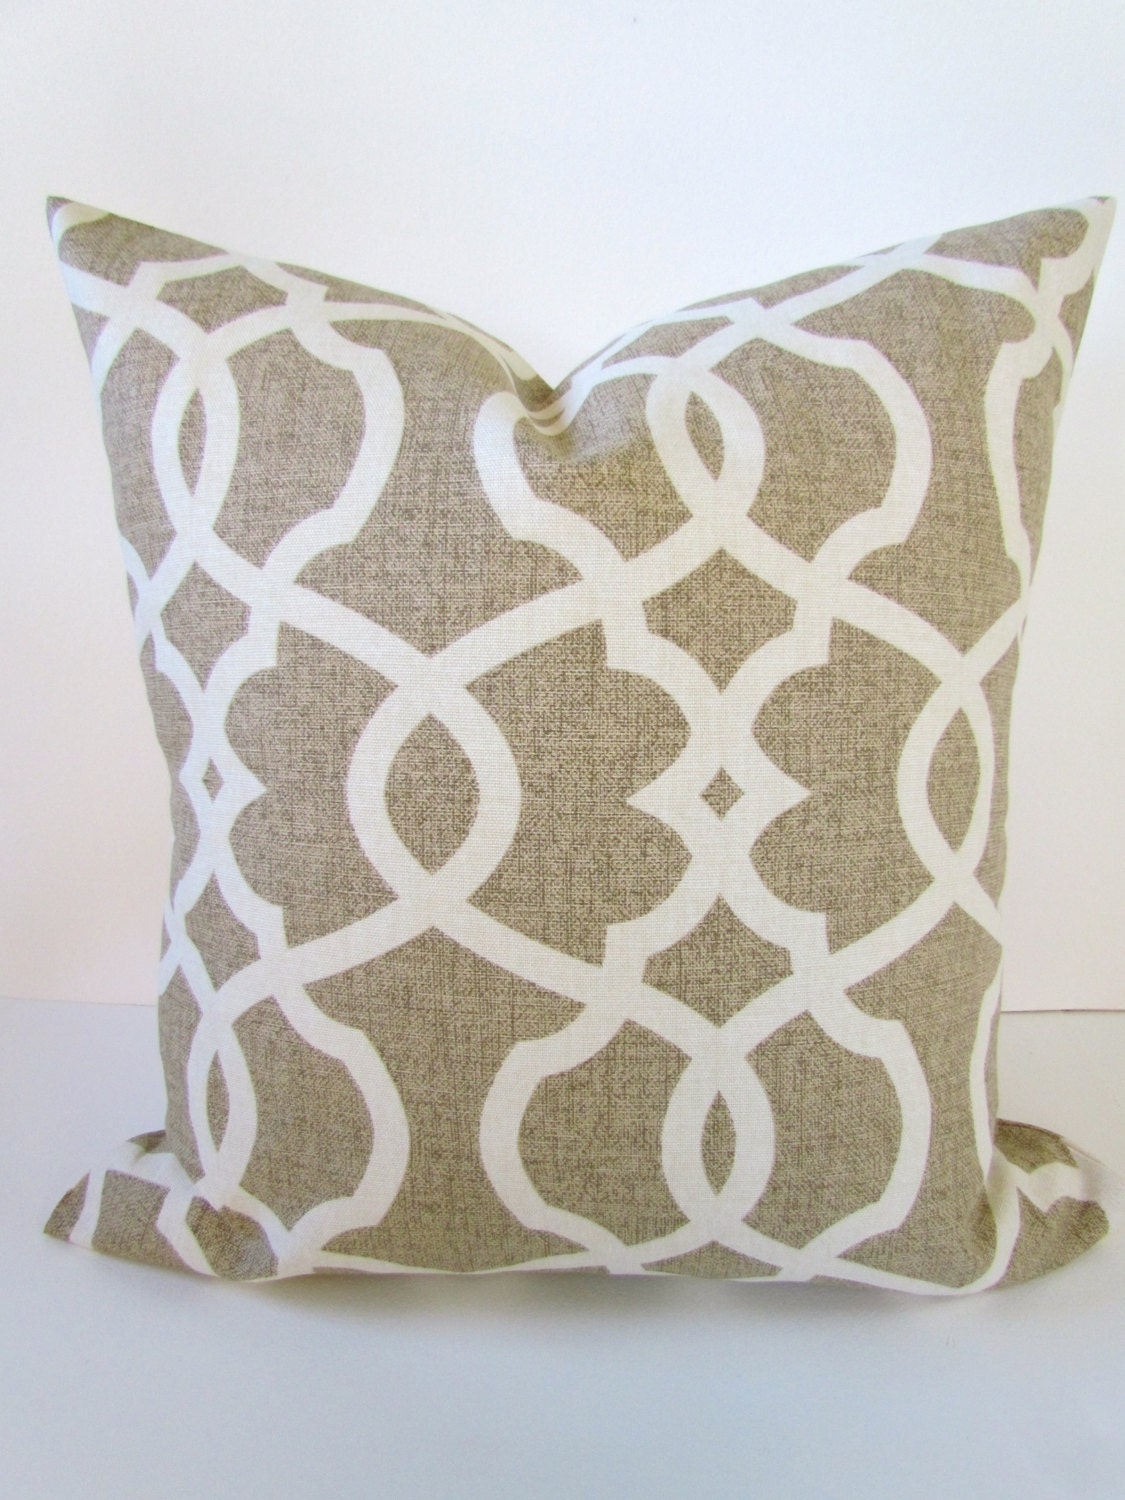 Throw Pillows Taupe : TAN PILLOWS Tan Decorative Pillow Covers Taupe Throw Pillow